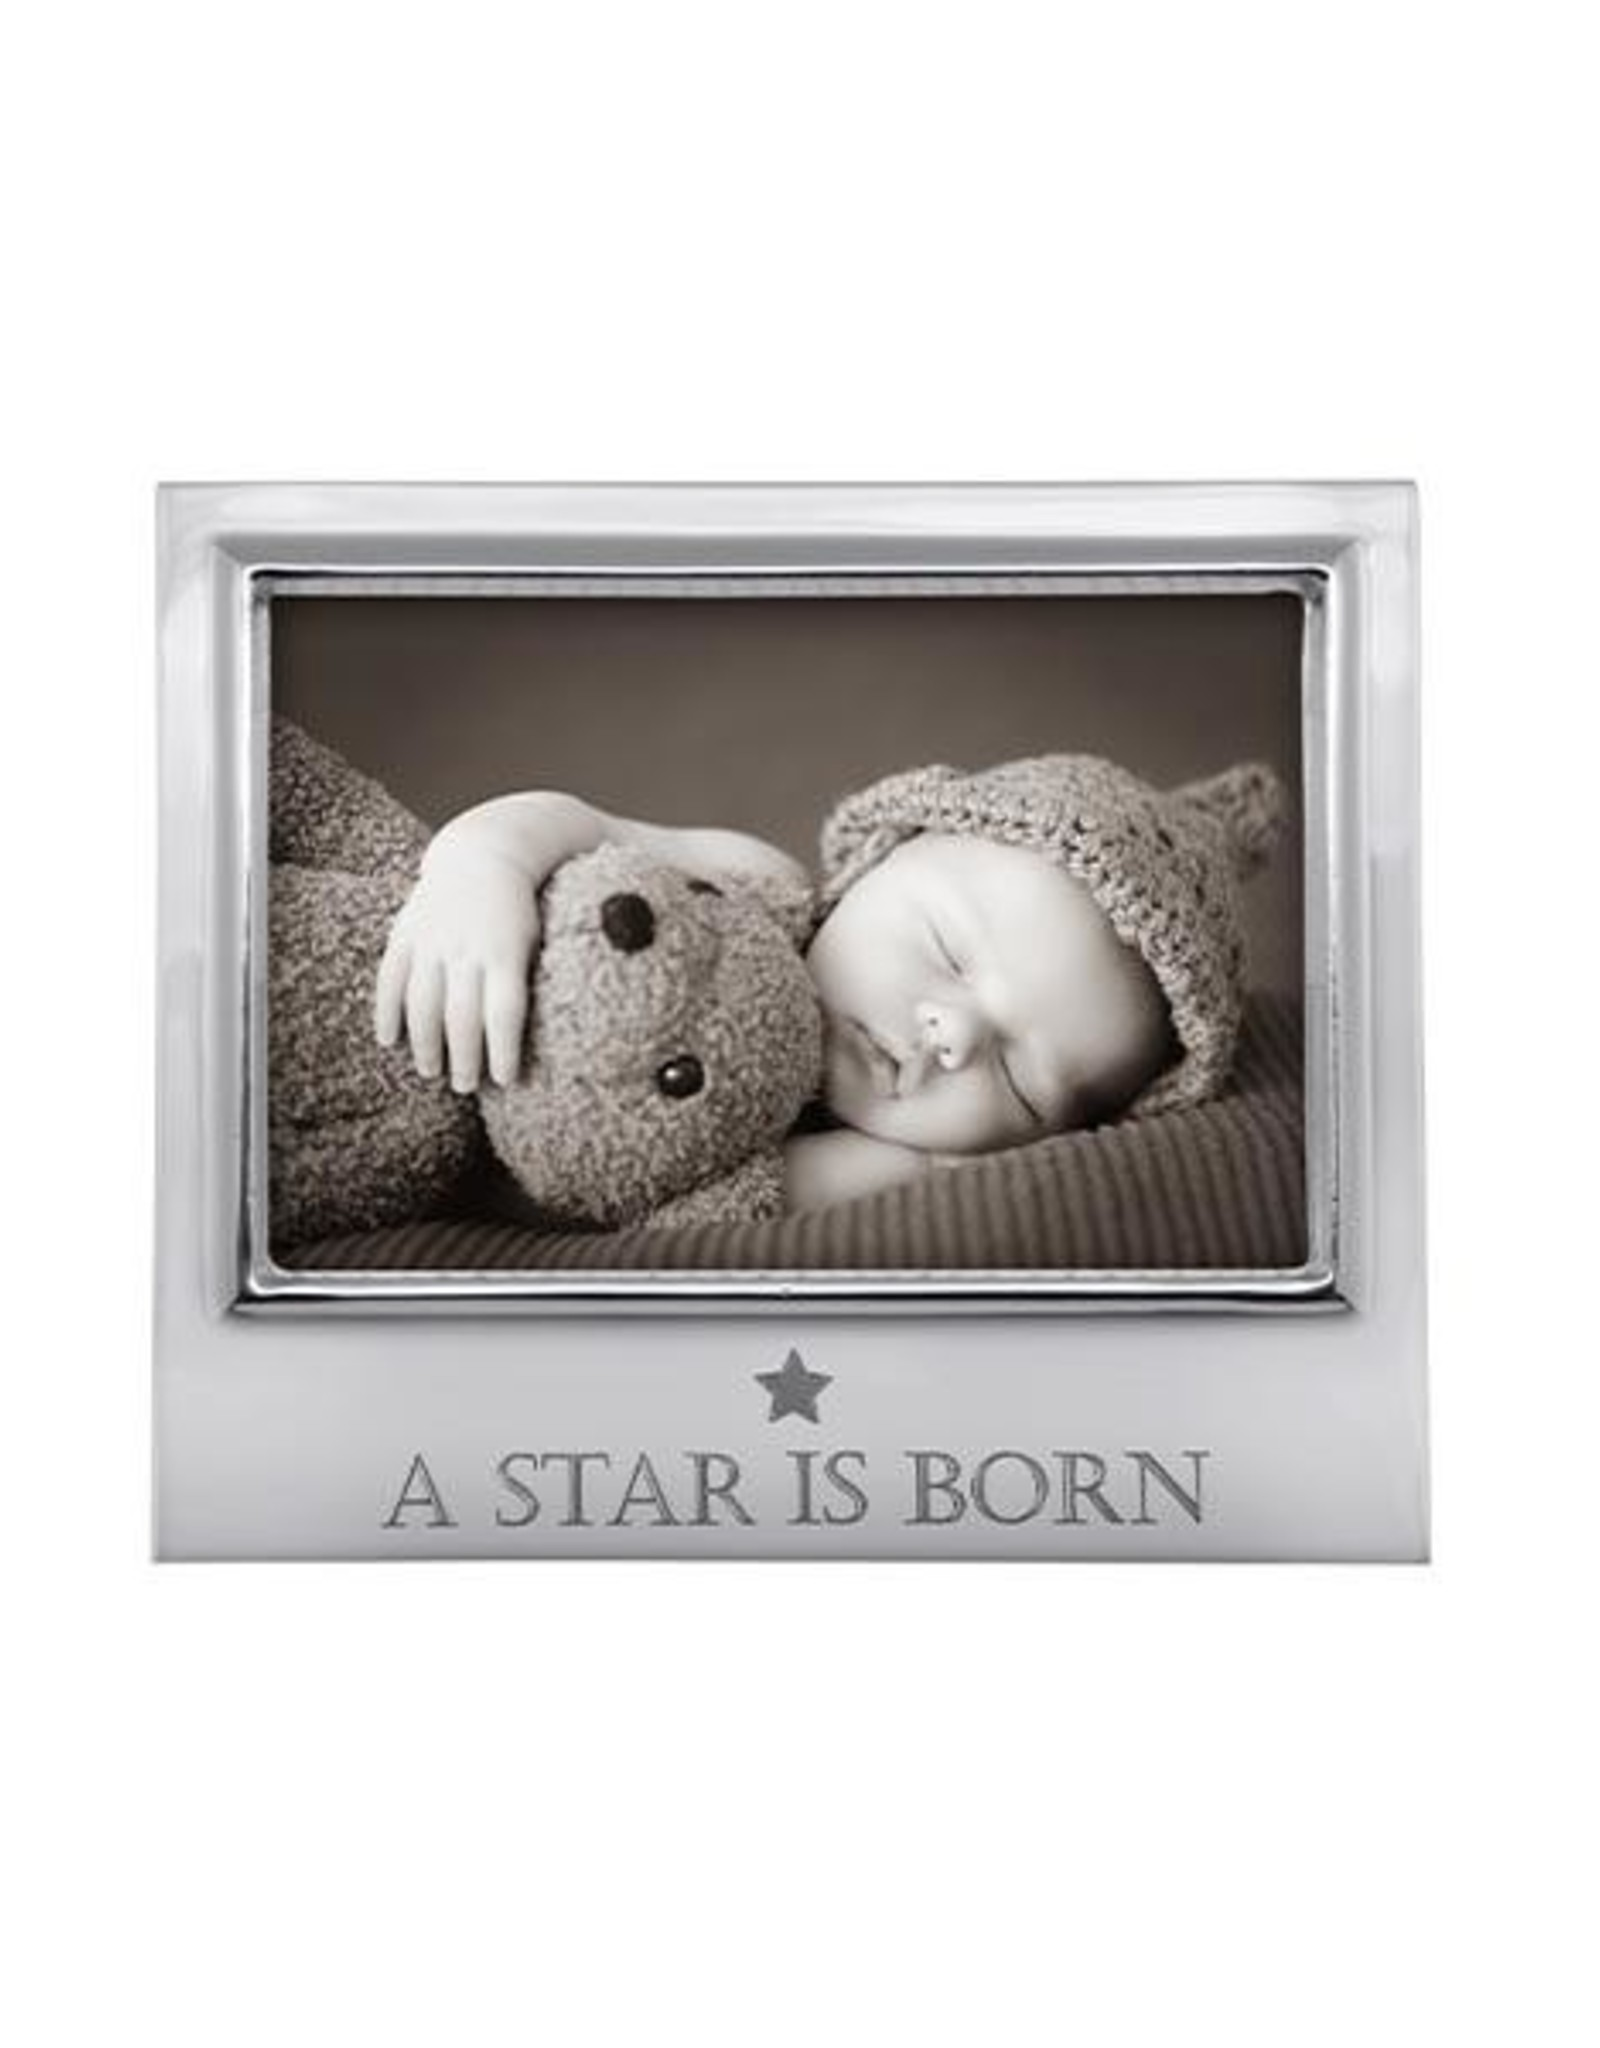 Mariposa Mariposa - A Star Is Born 4x6 Signature Frame